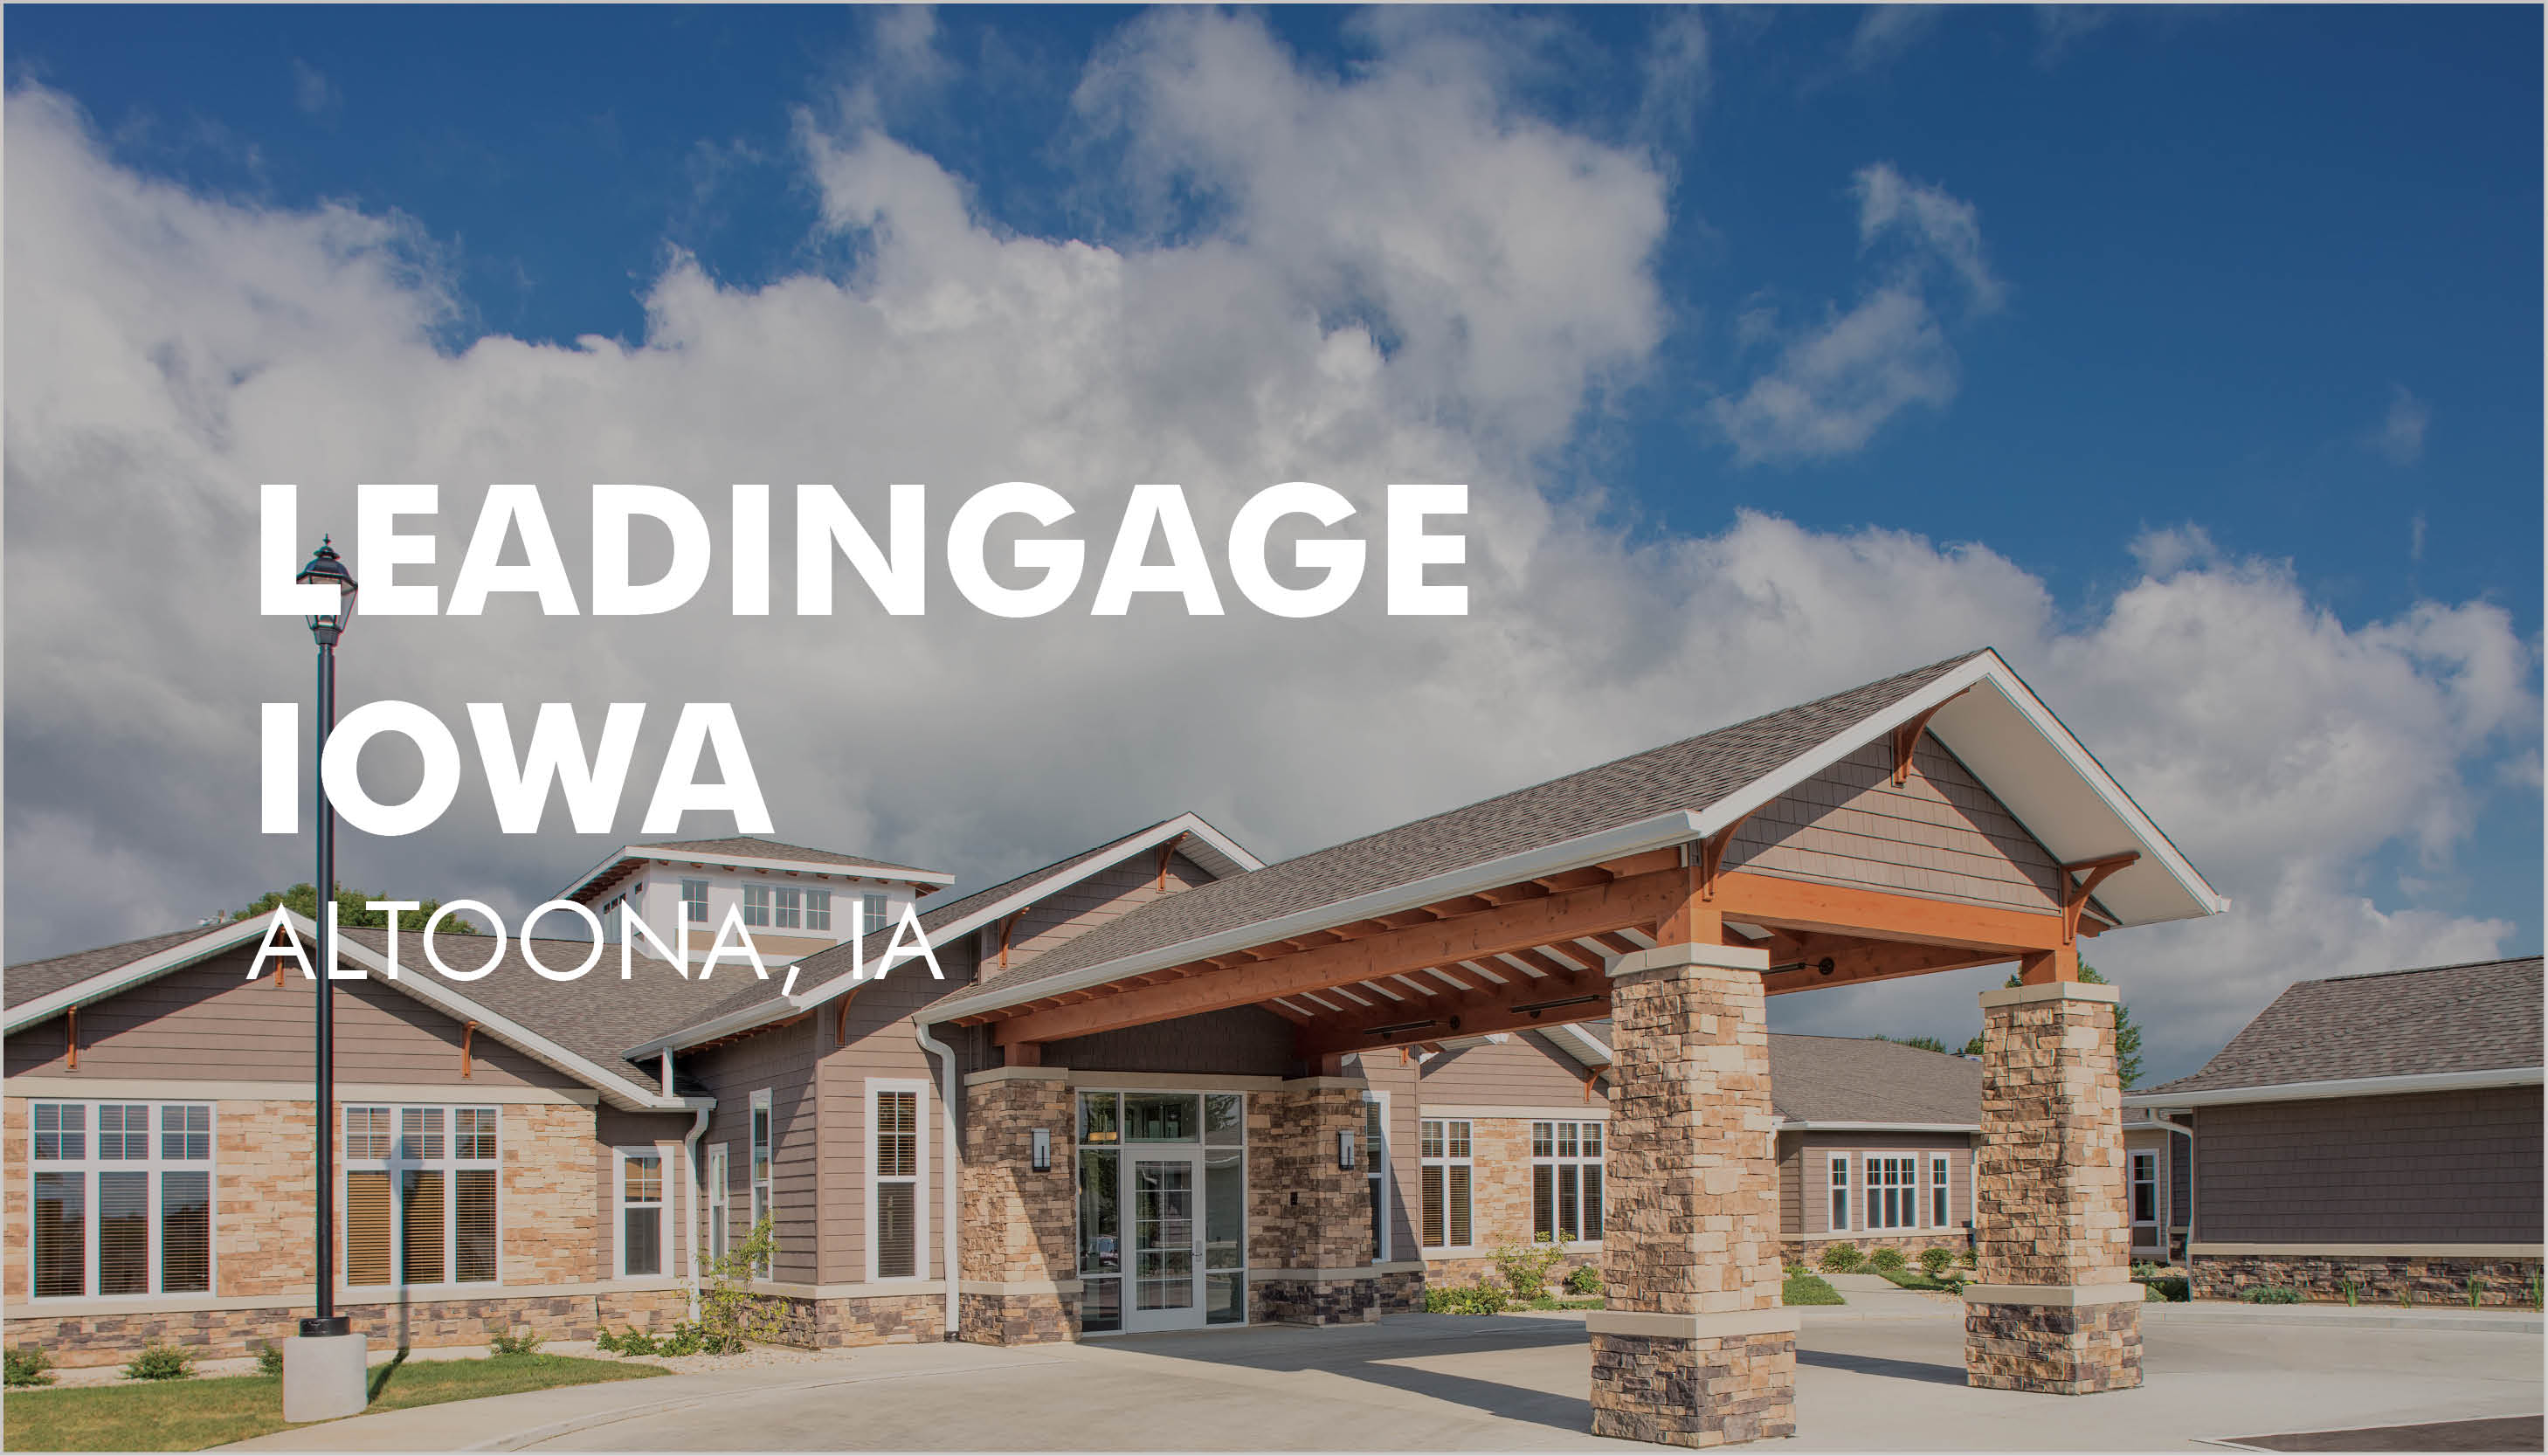 LeadingAge Iowa Spring Conference 2019 Image